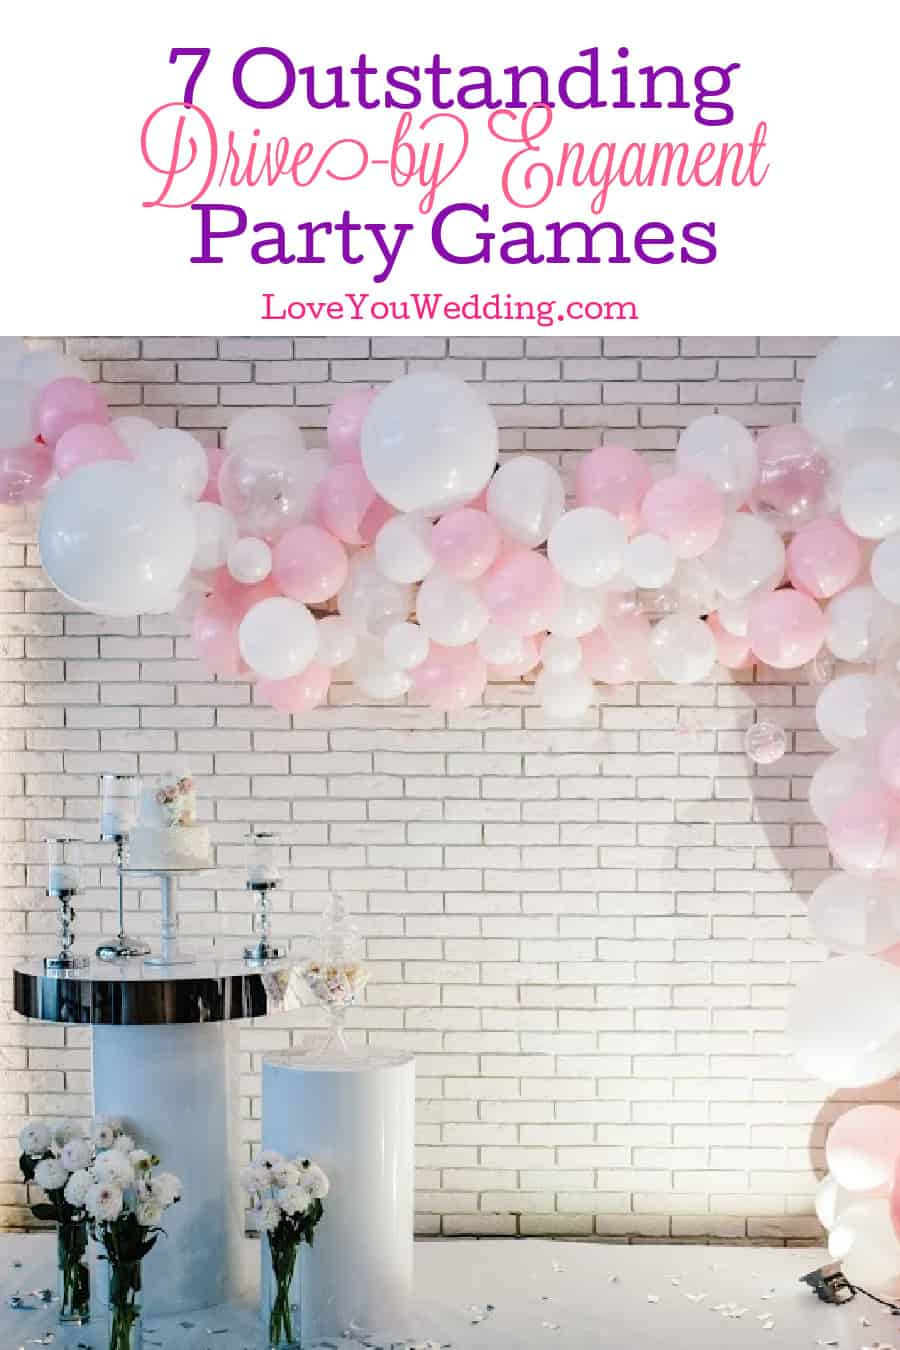 Finding clever drive-by engagement party games is definitely a challenge! Don't worry, we've got you covered! Check out 7 that we love!